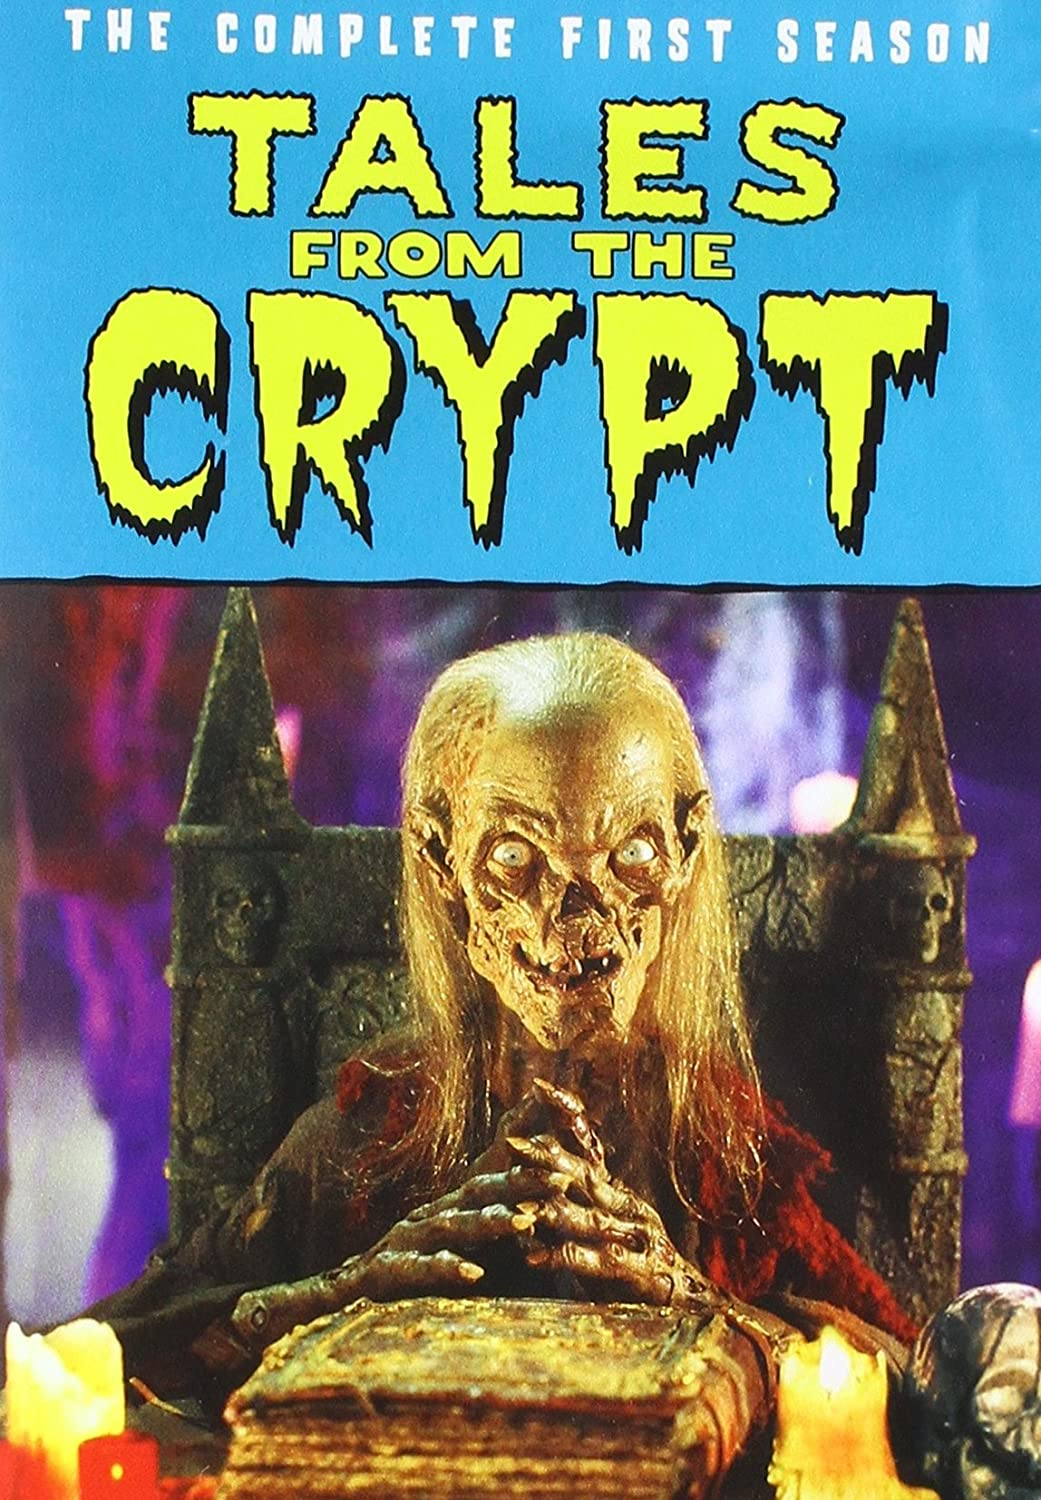 Amazon.com: Tales from the Crypt: The Complete Seasons 1-2 (2-Pack): Various: Movies & TV